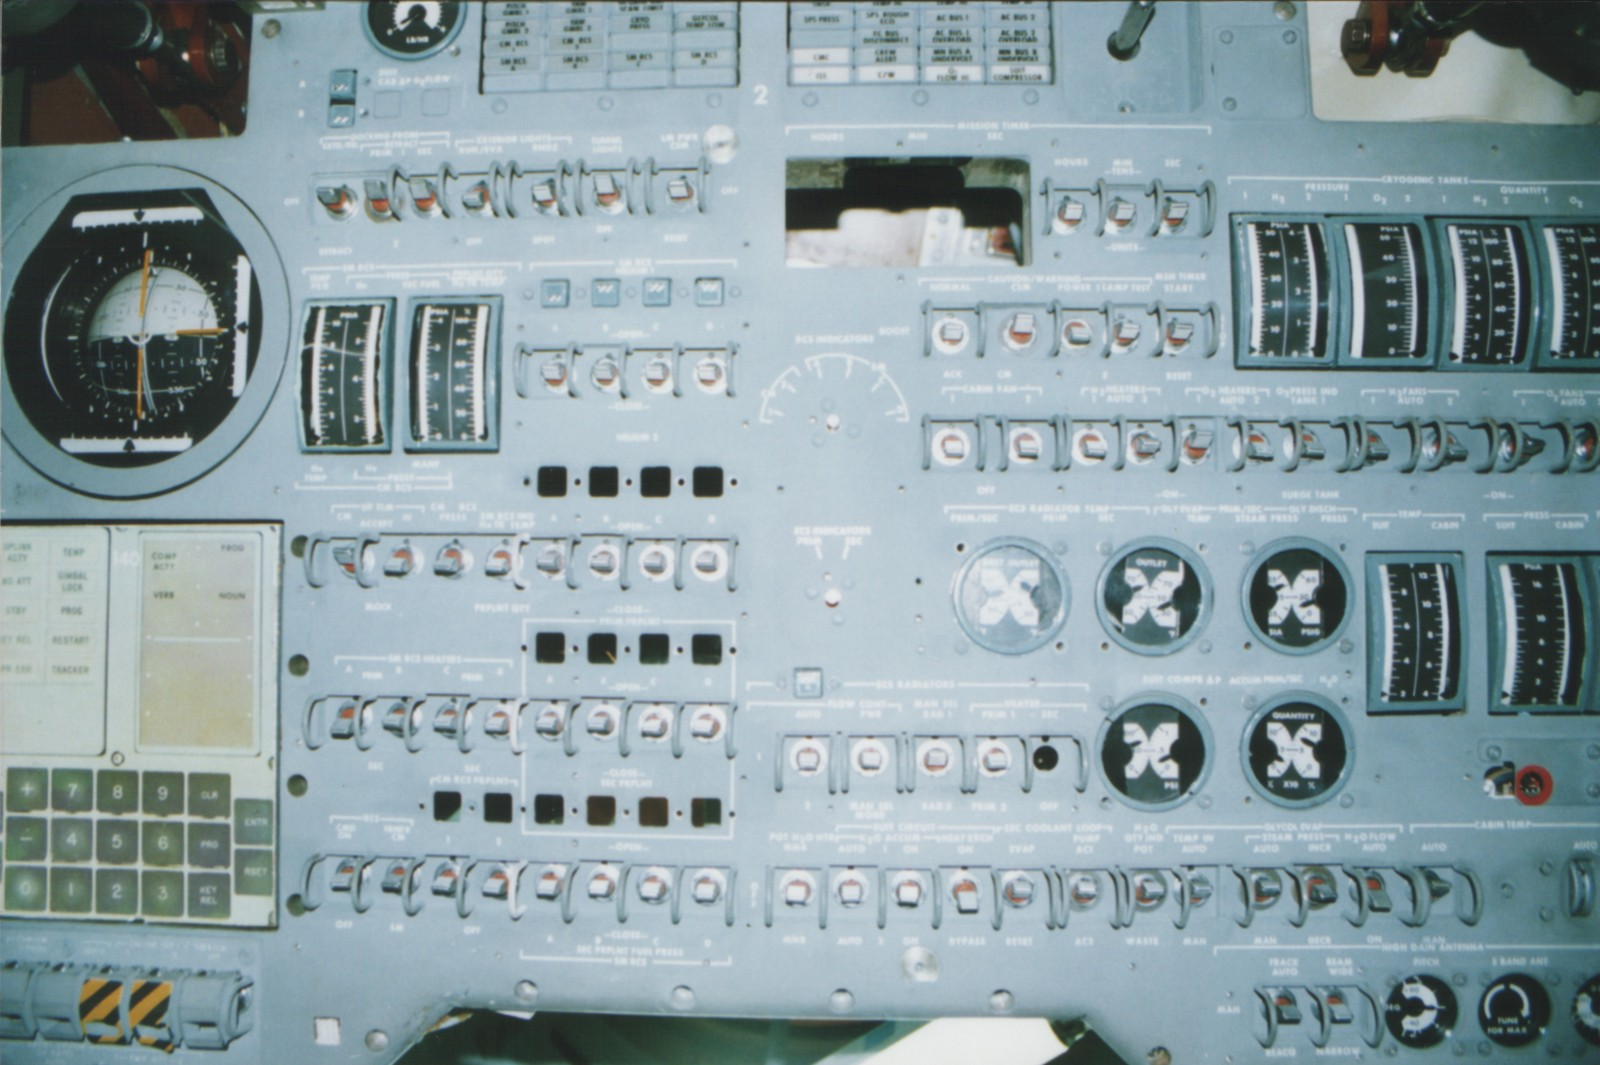 apollo capsule control panel - photo #6